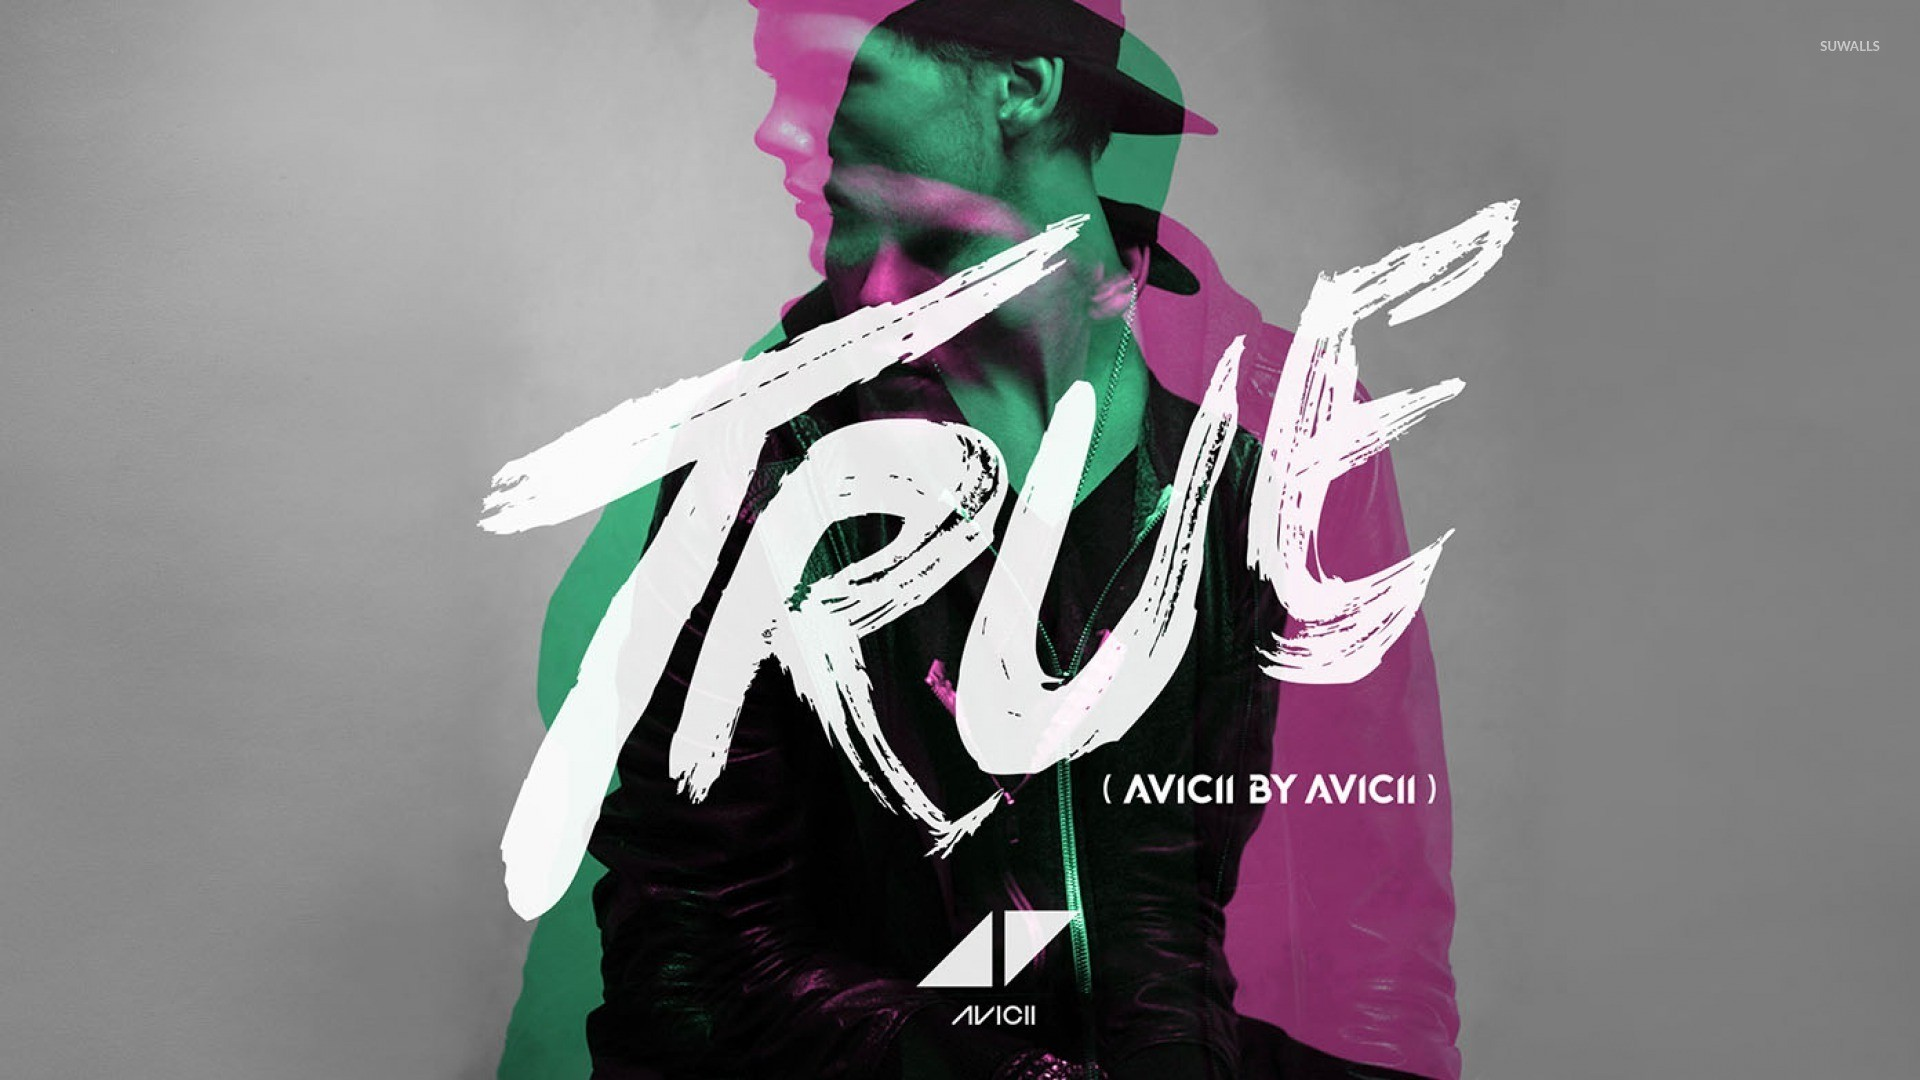 Res: 1920x1080, Avicii - True [2] wallpaper